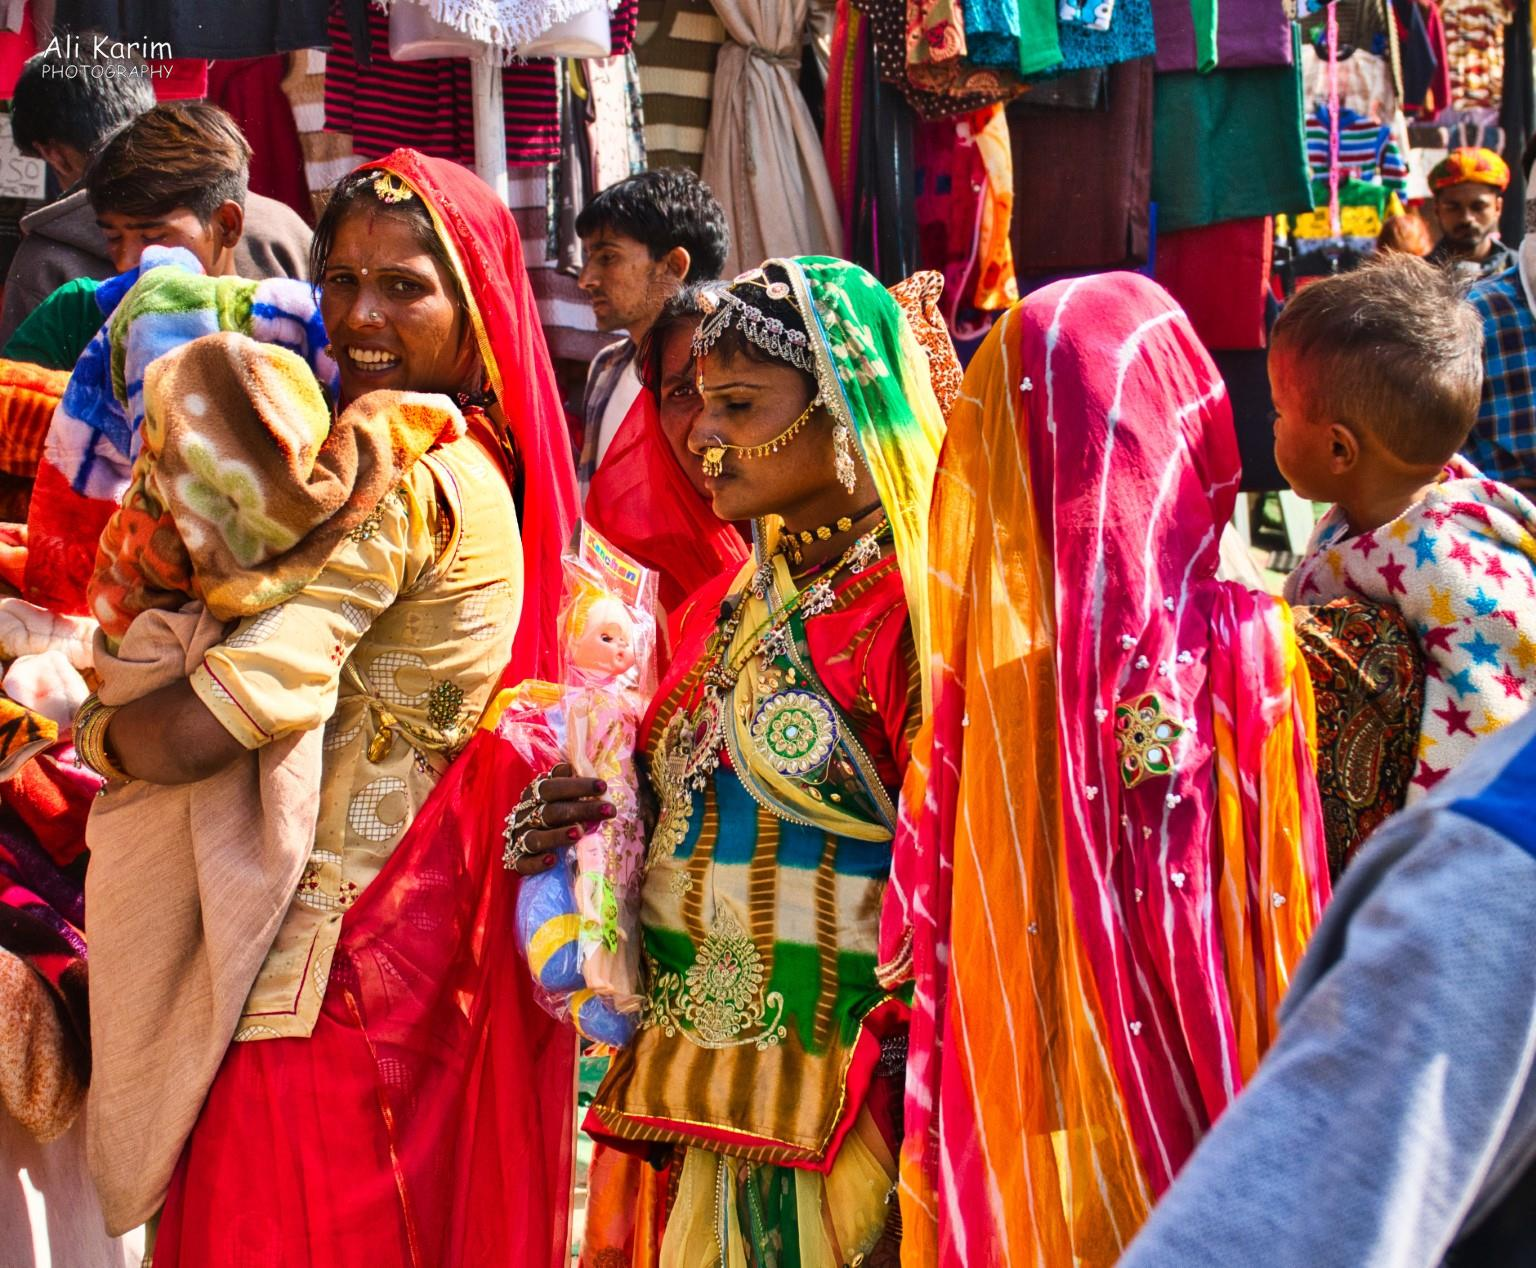 Pushkar, Rajasthan Traditionally adorned recently married woman; very colorful